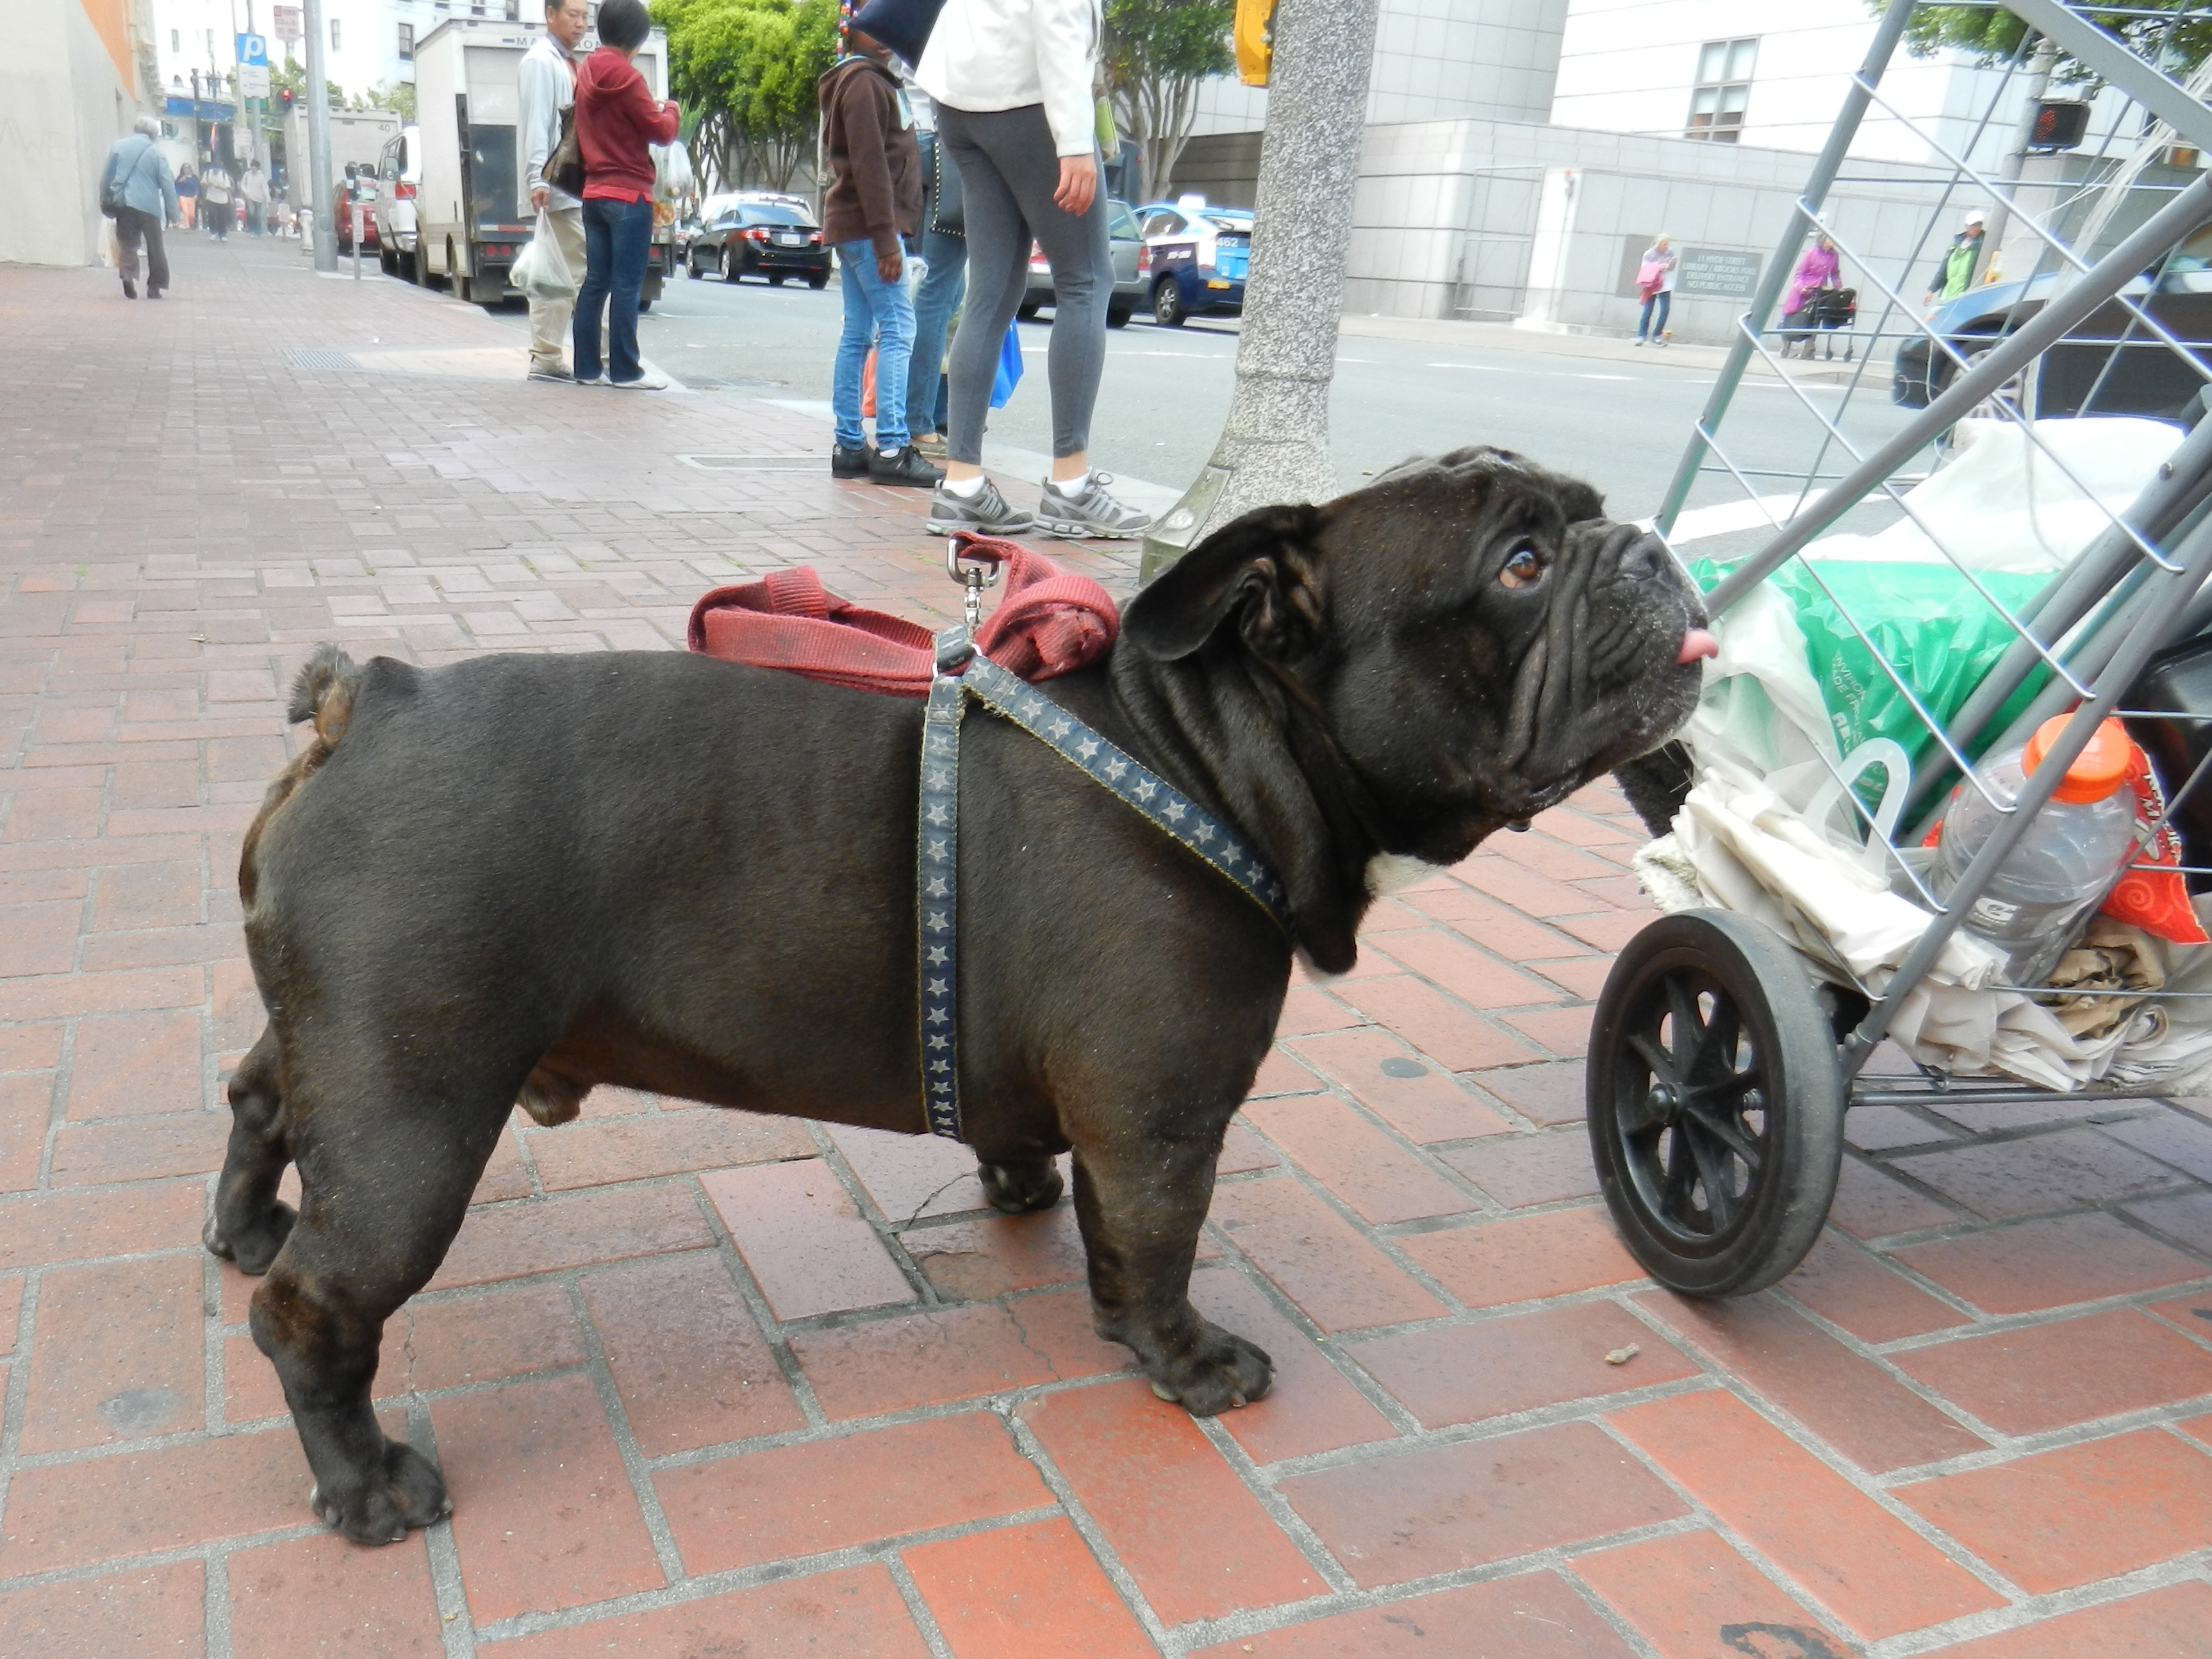 English Bulldog | The San Francisco Scene--Seen!